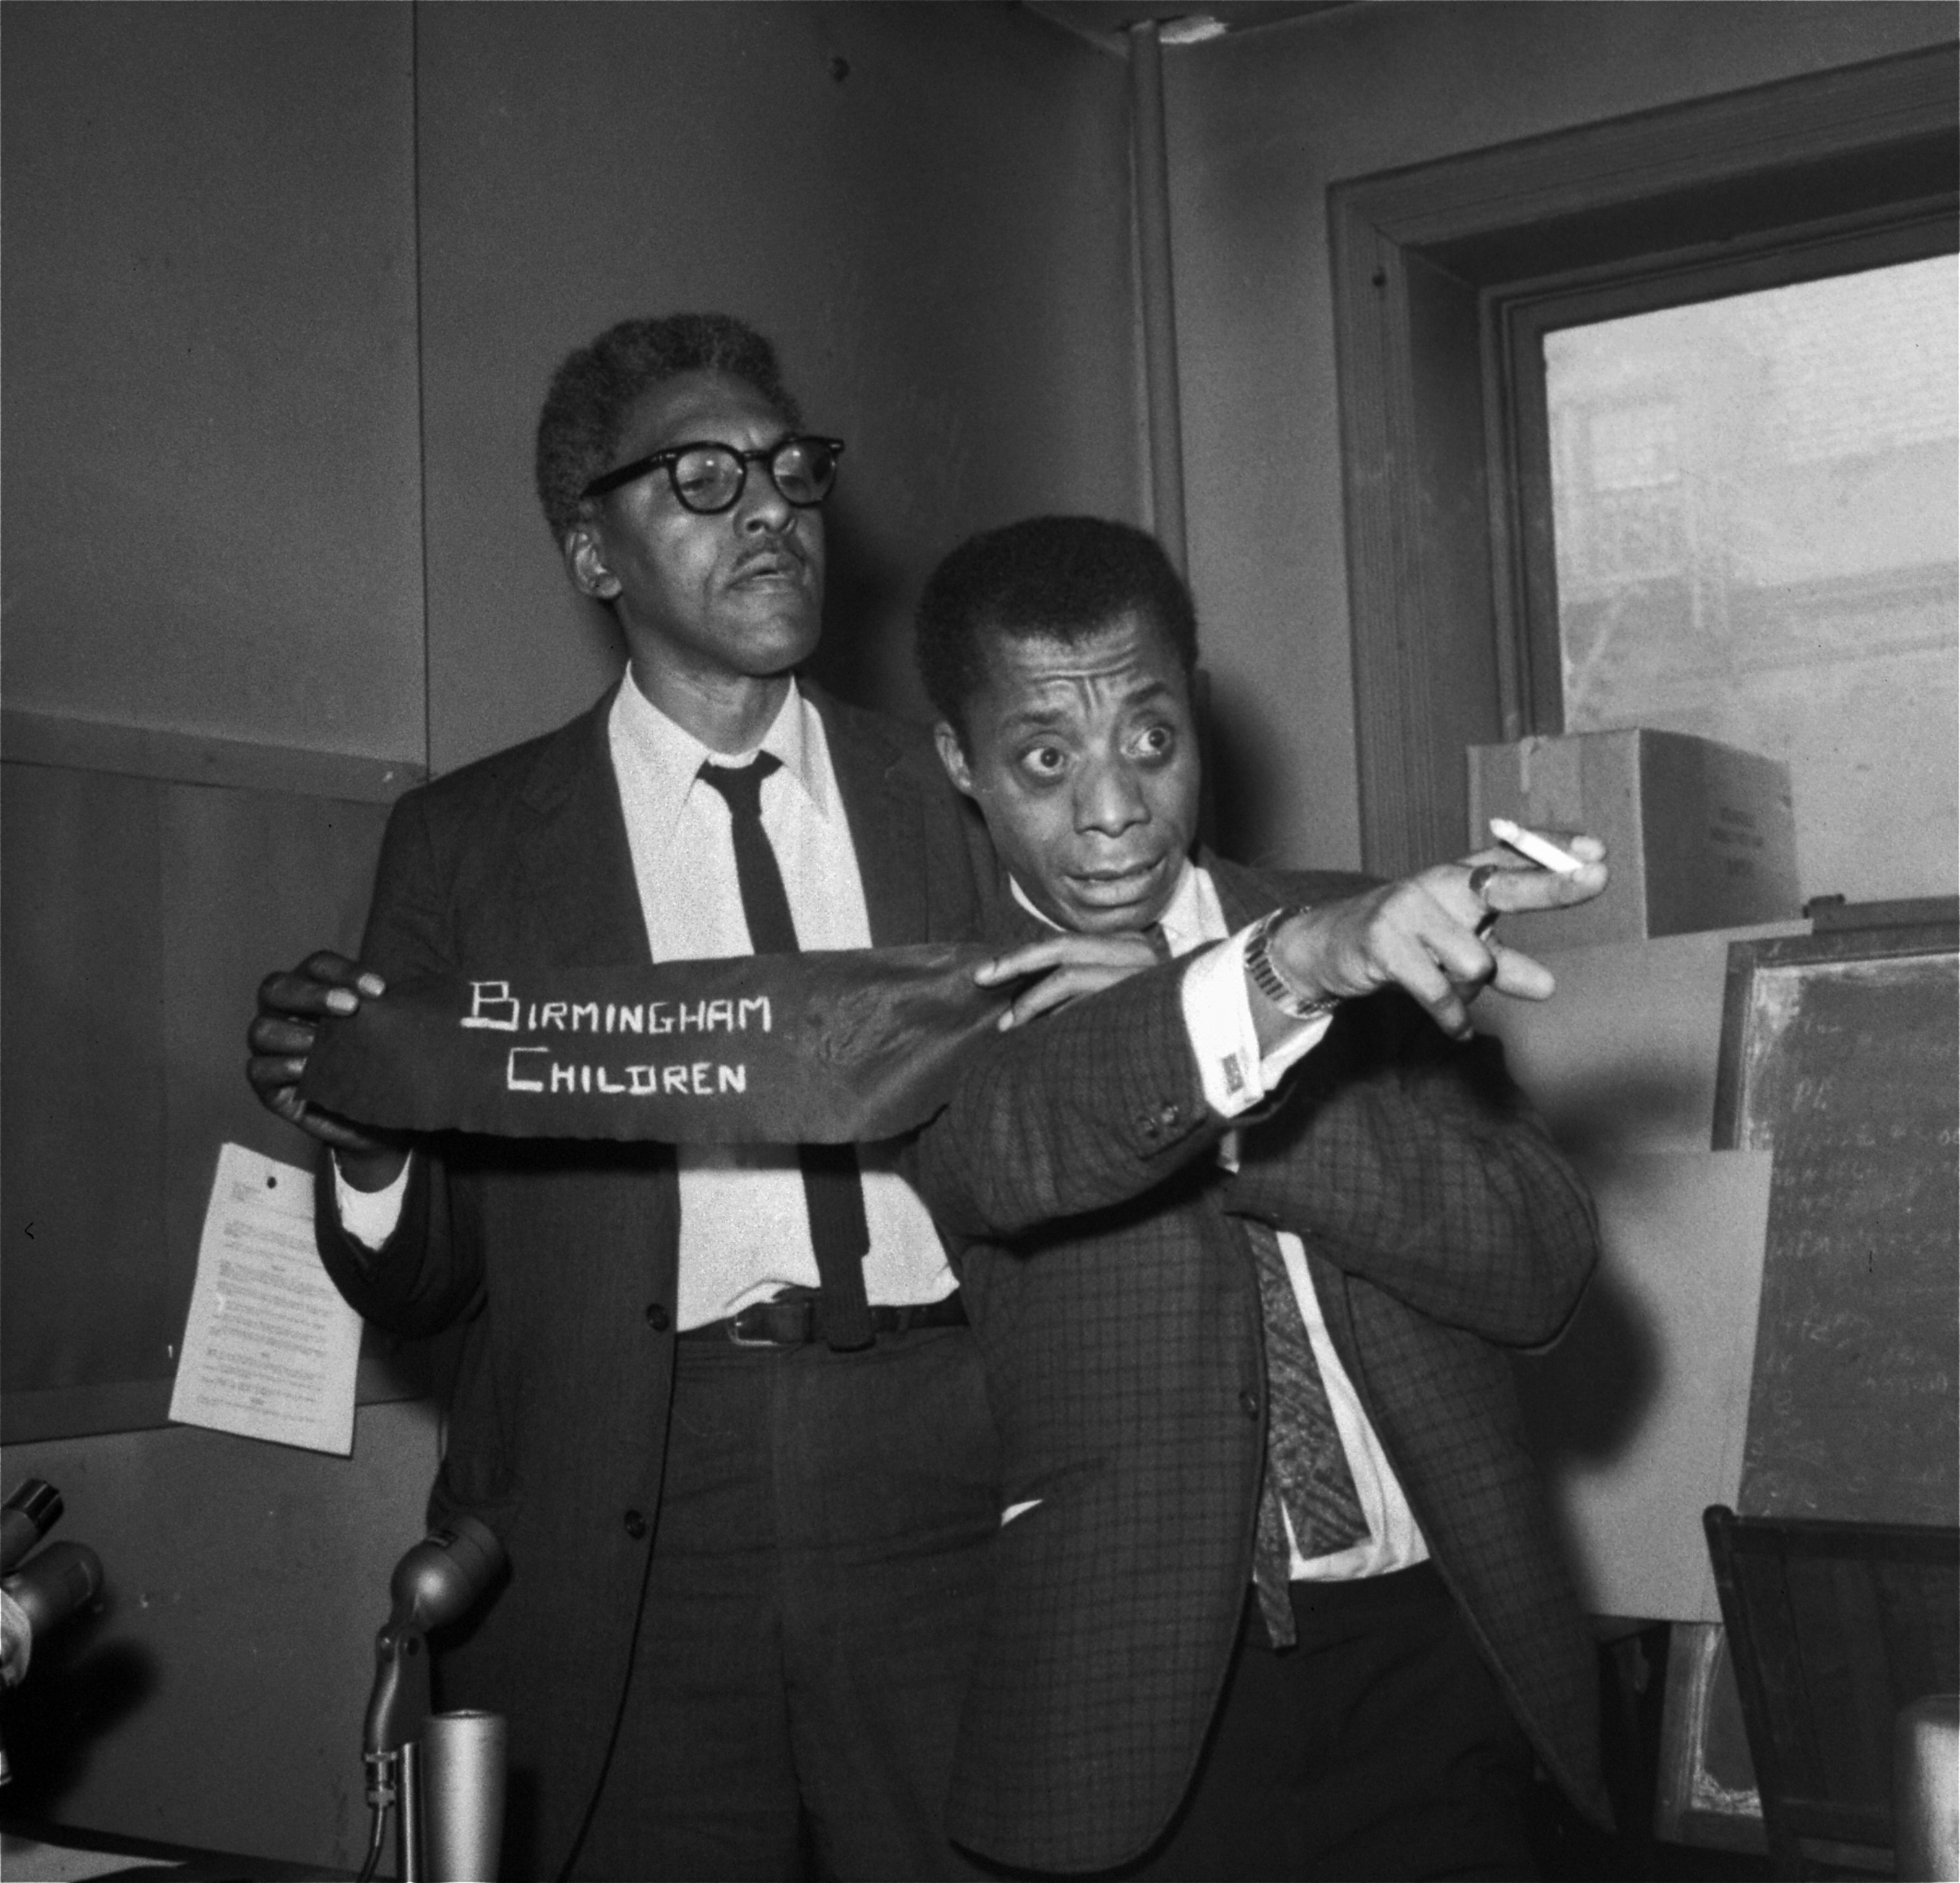 James Baldwin, right, and Bayard Rustin, deputy director of the March on Washington, discussing the 16th Street Baptist Church bombing that killed four young African-American girls in Birmingham, Ala., during a news conference in New York three days later, on Sept. 18, 1963. Rustin is holding an armband that people would be wearing at an upcoming rally organized as a day of mourning for the victims.